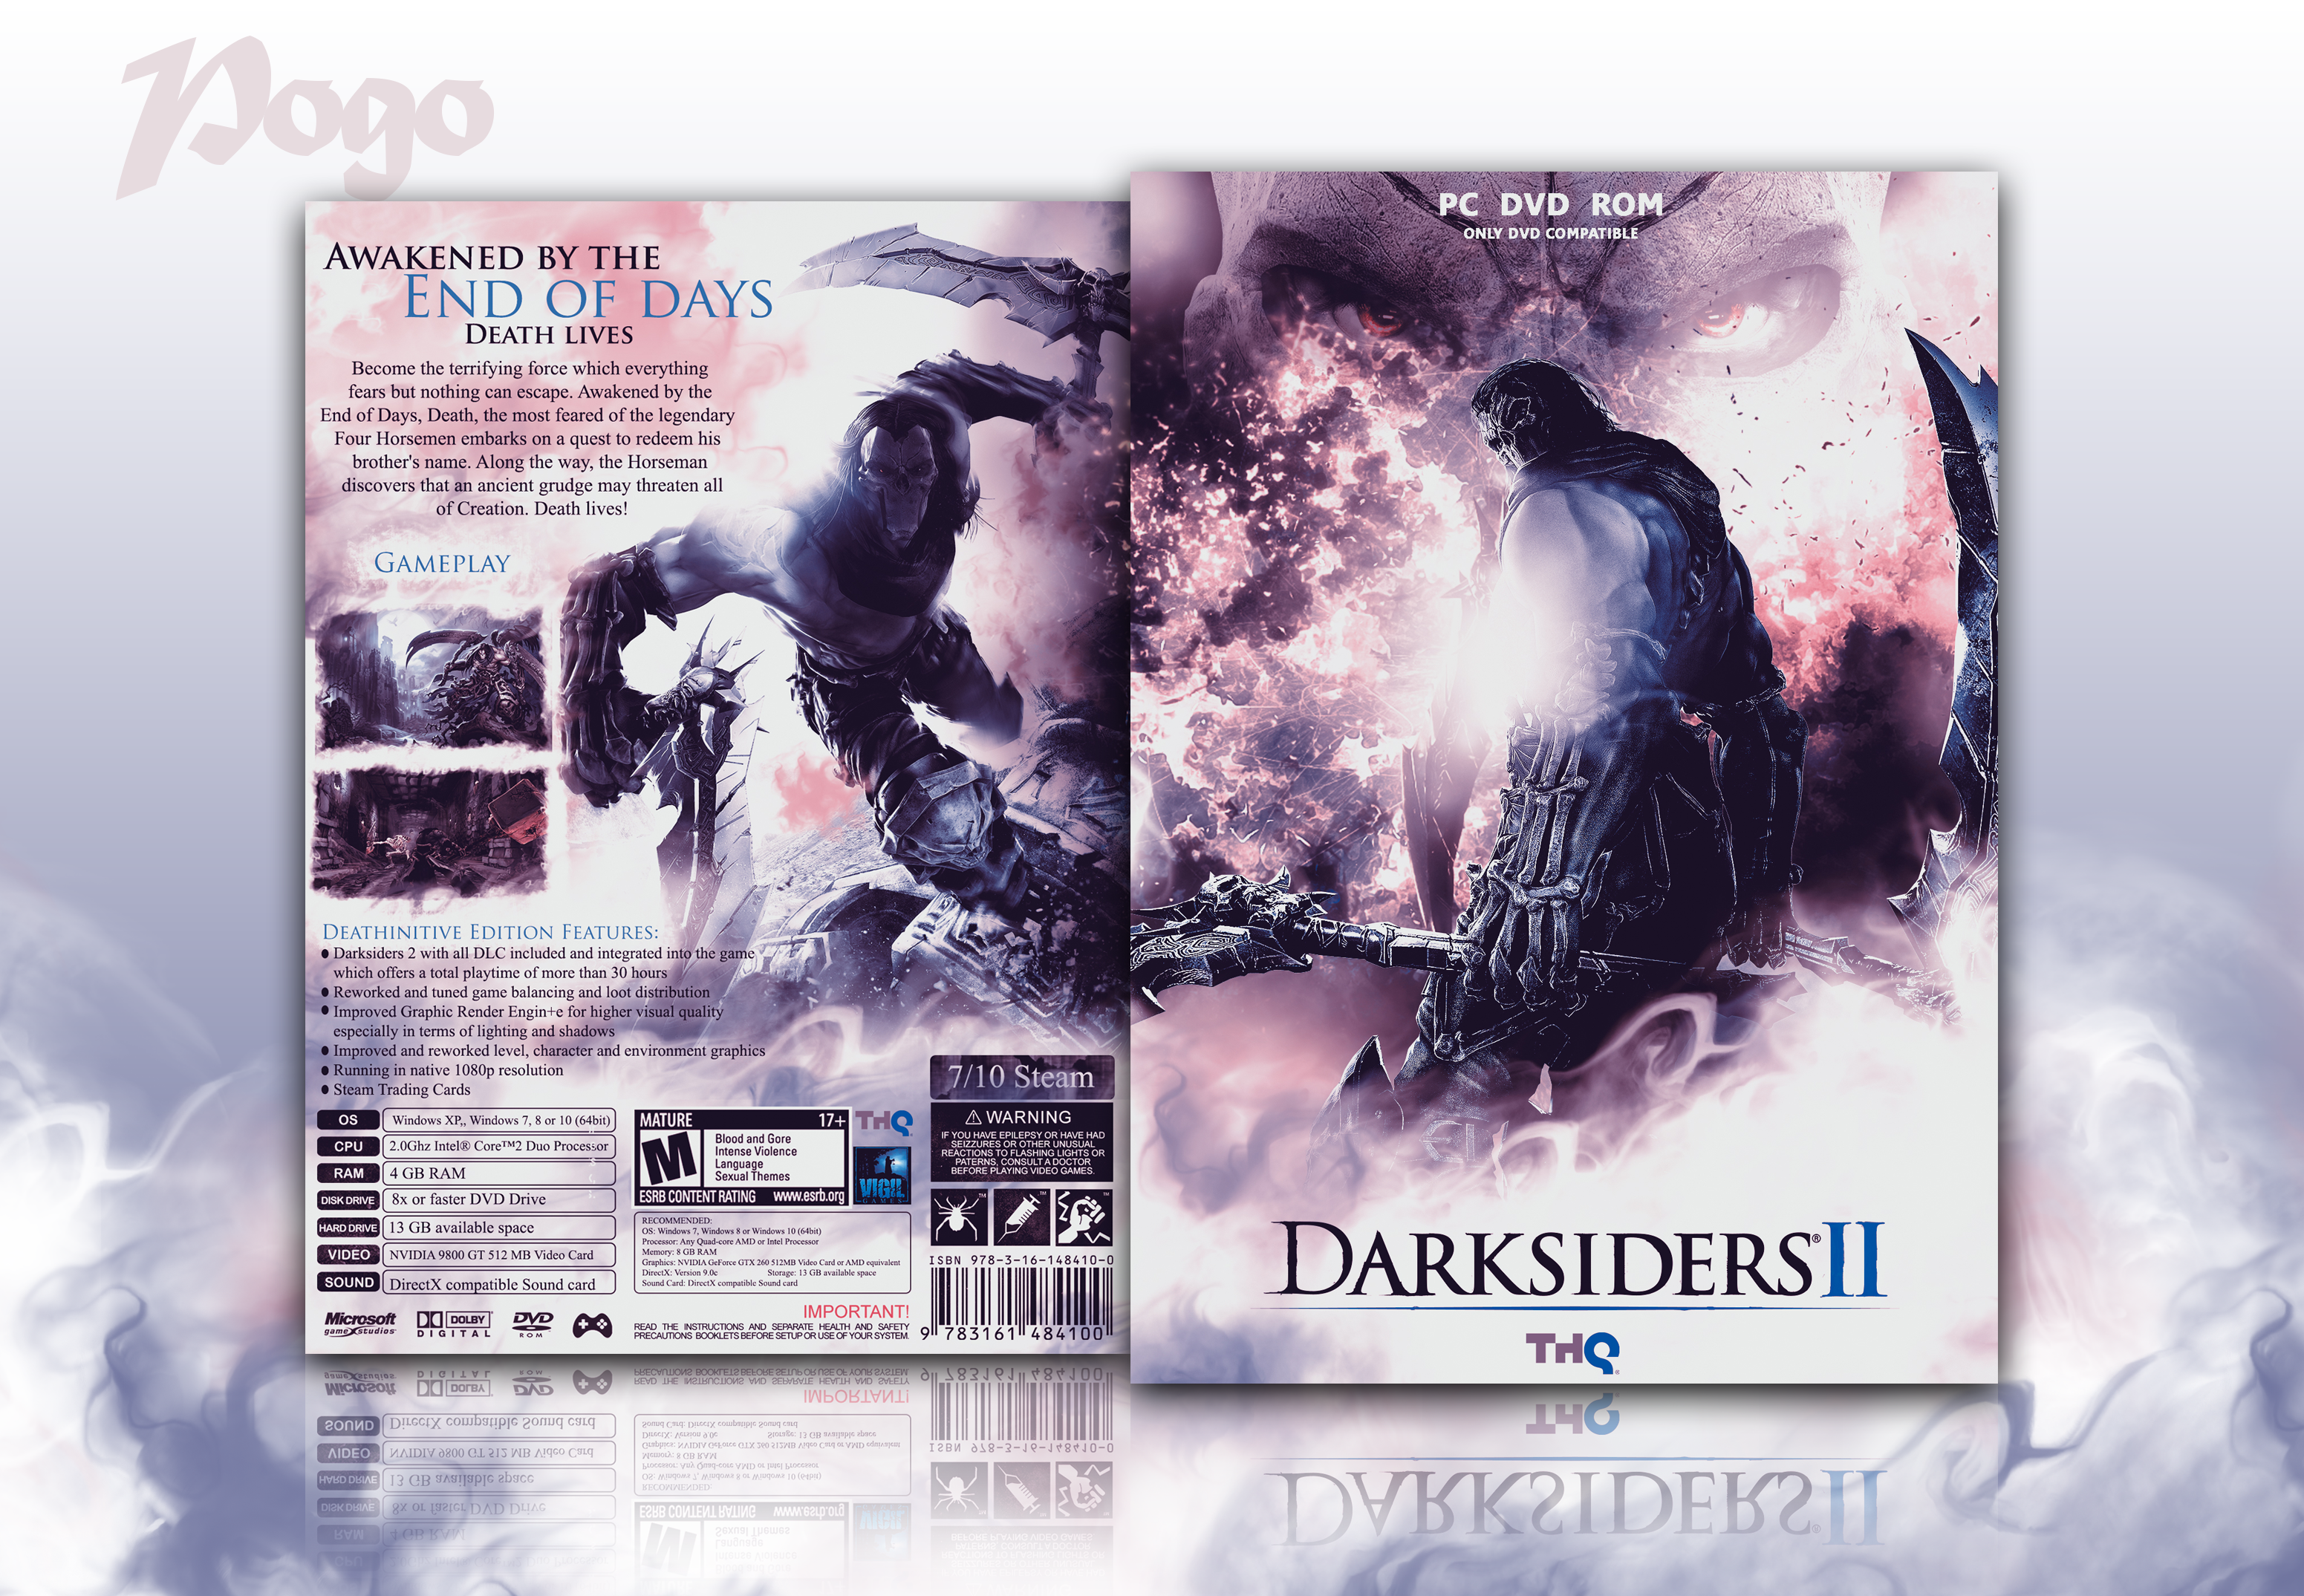 Darksiders II box cover